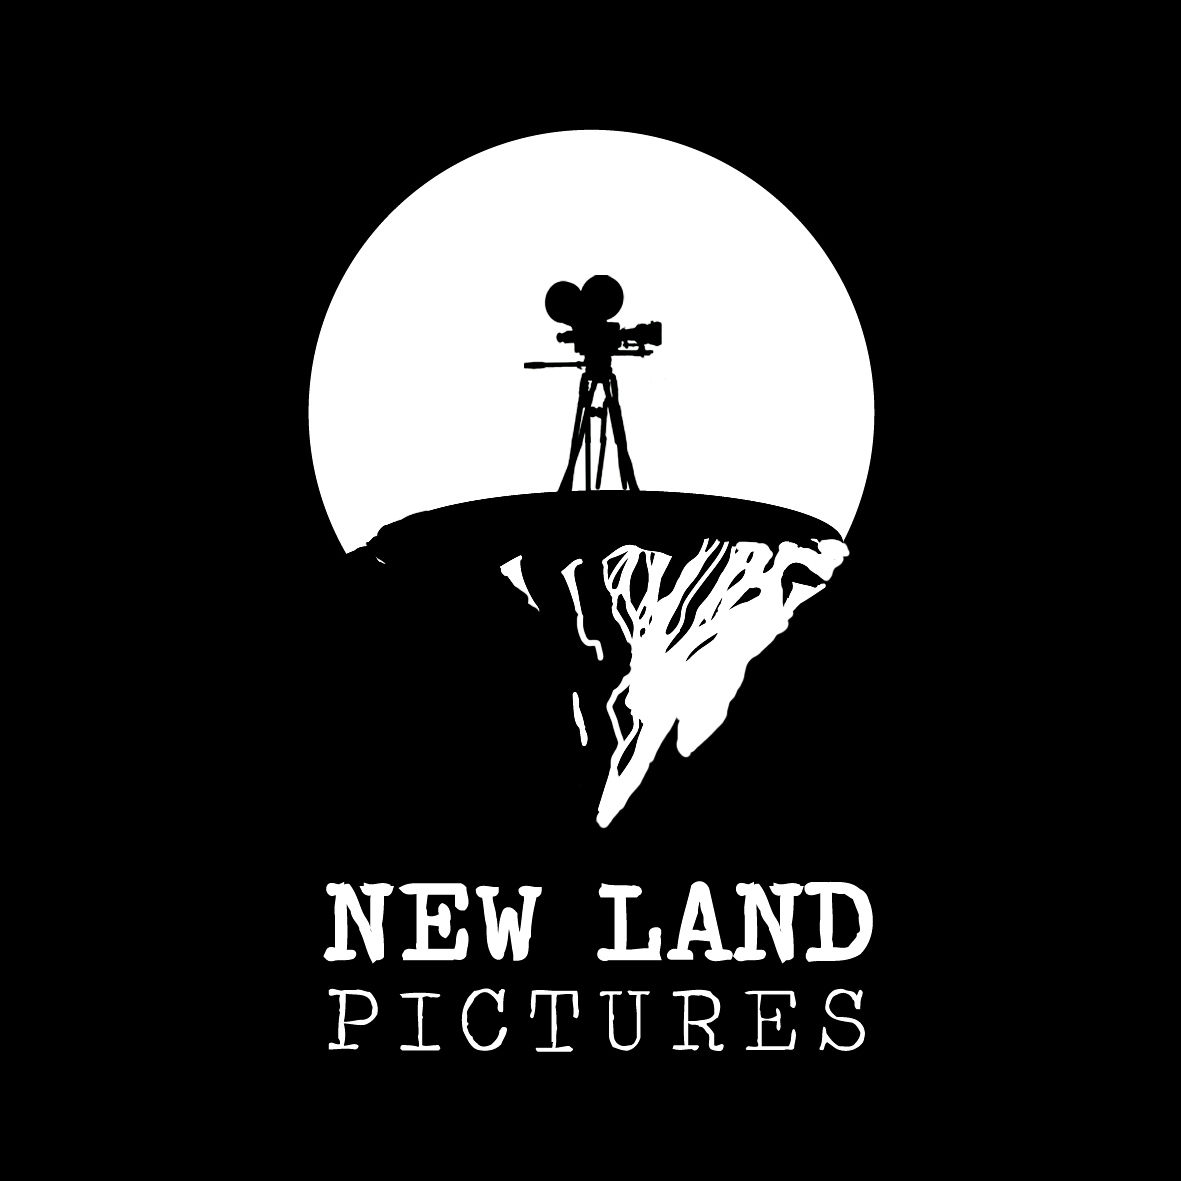 NEW LAND PICTURES